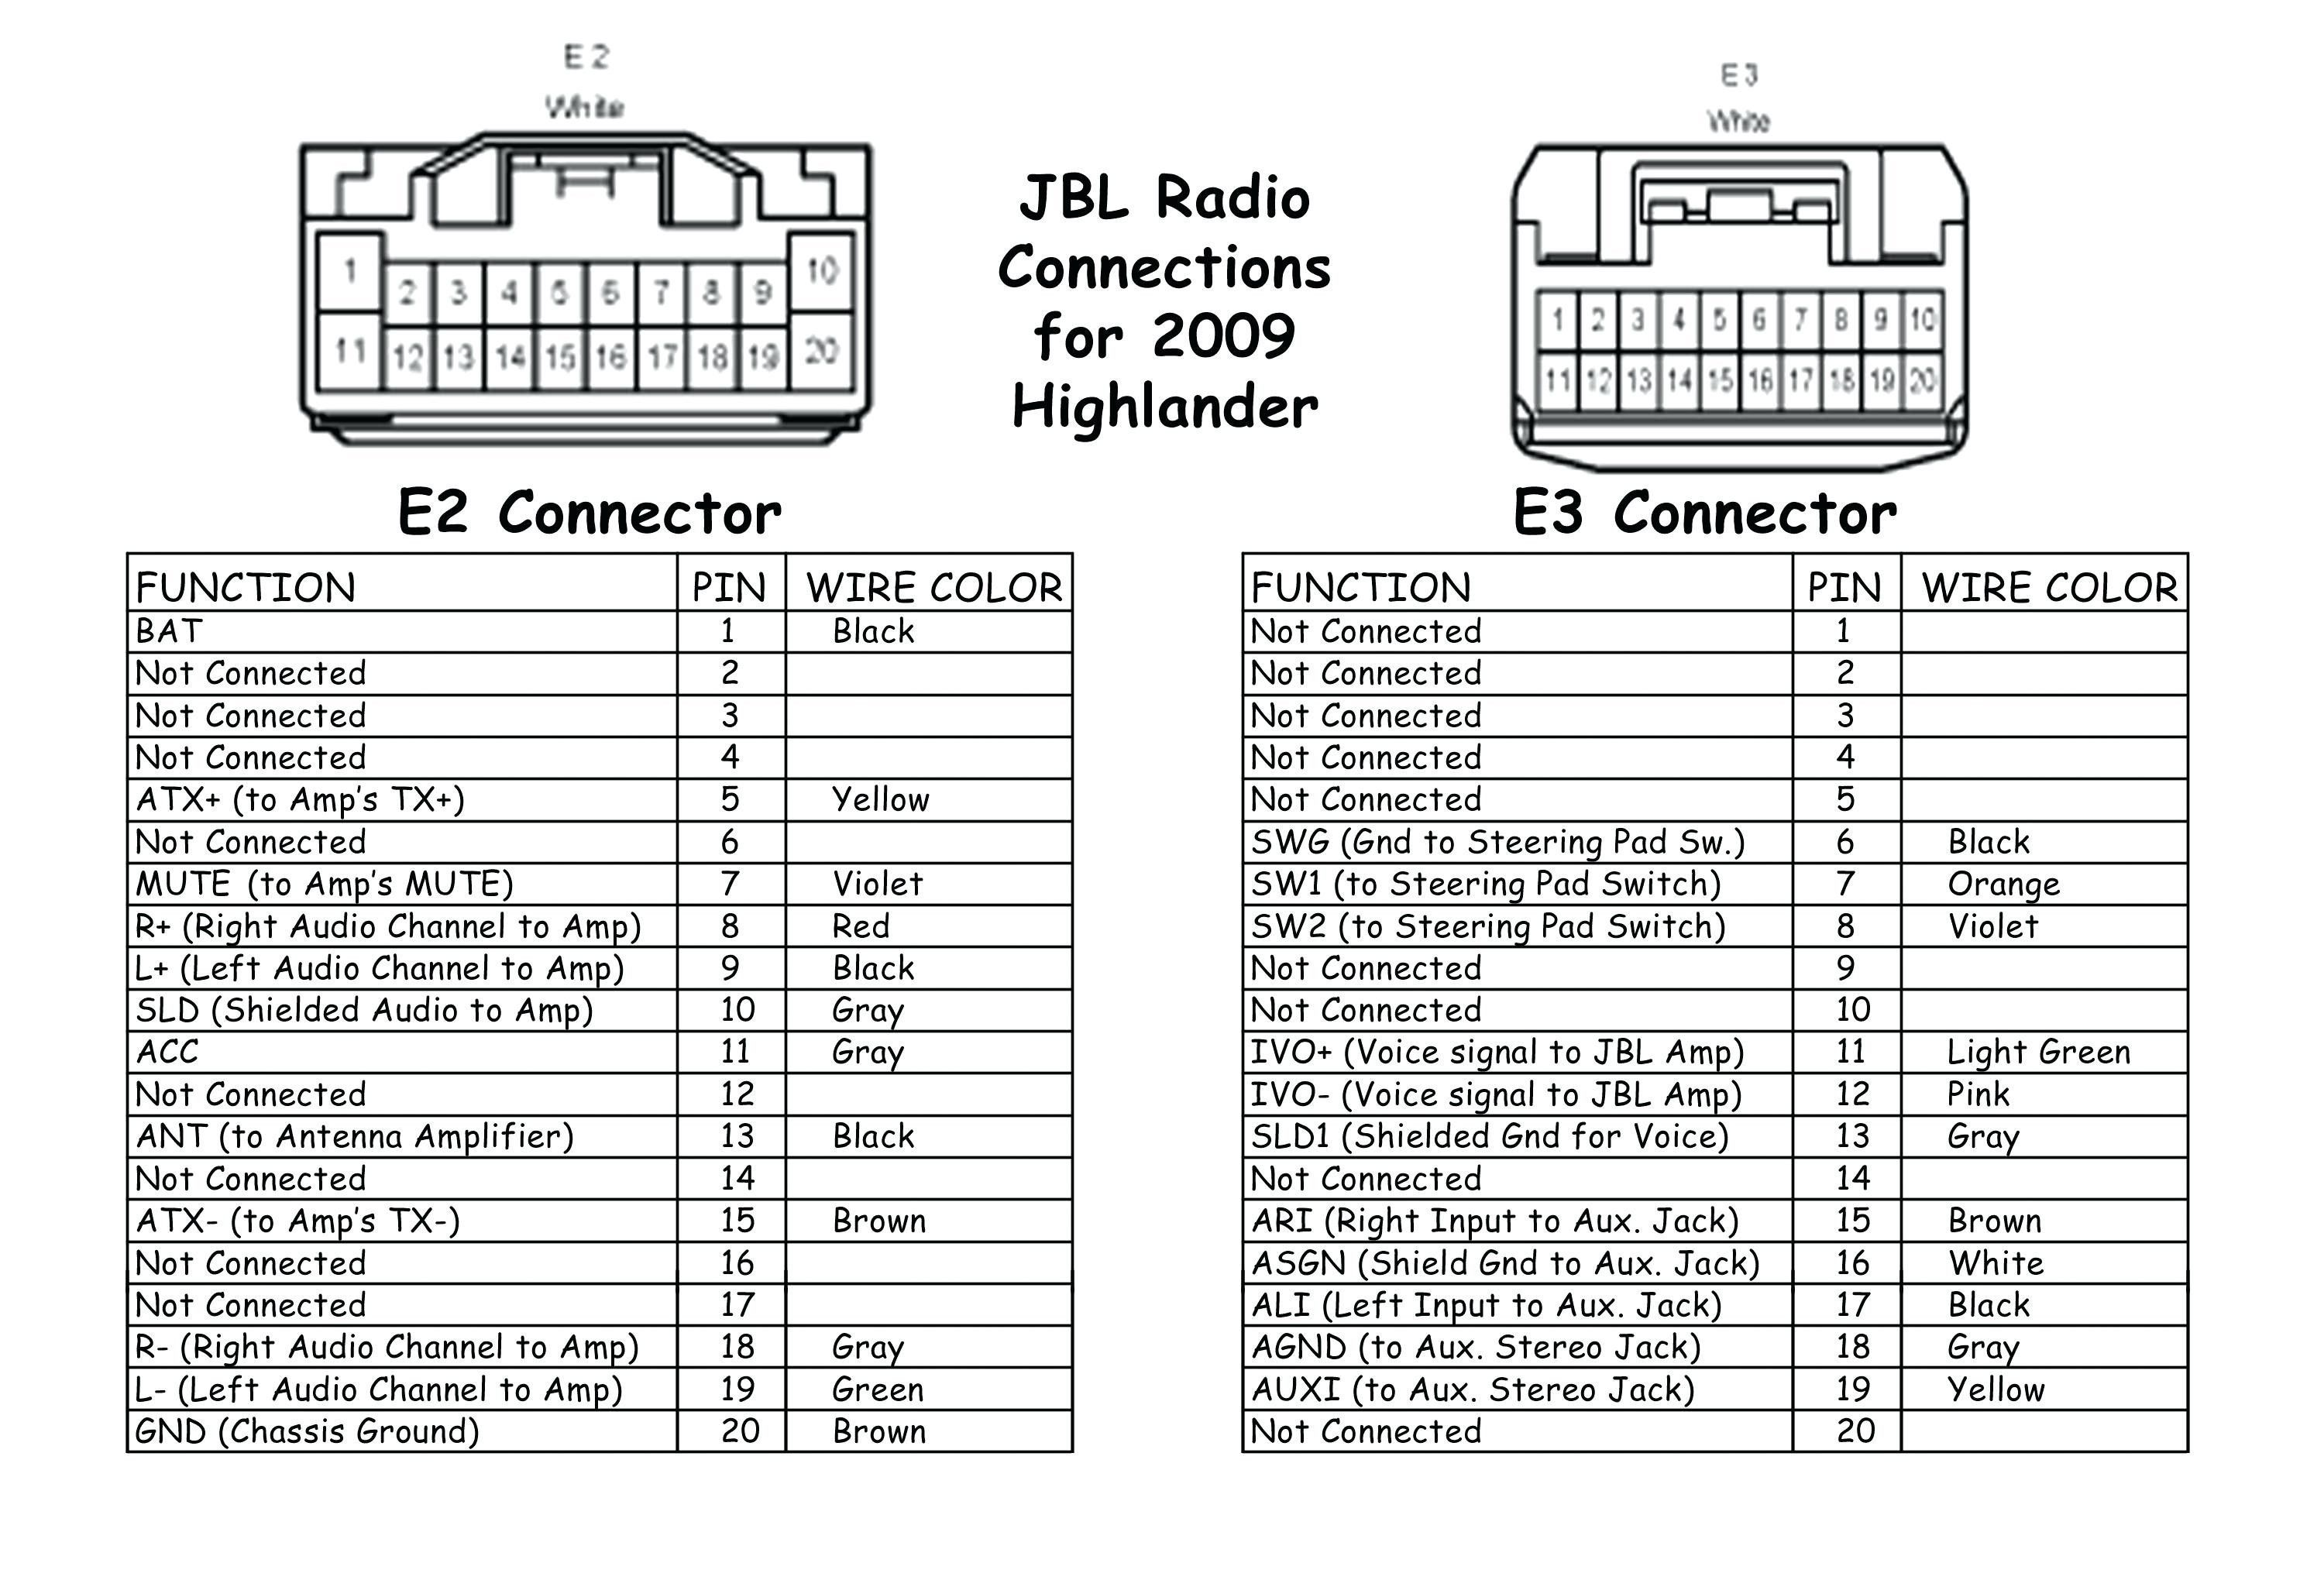 Inspirational Wiring Diagram Parrot Ck3100 Diagrams Digramssample Diagramimages Wiringdiagramsample Pioneer Car Stereo Car Stereo Electrical Wiring Diagram